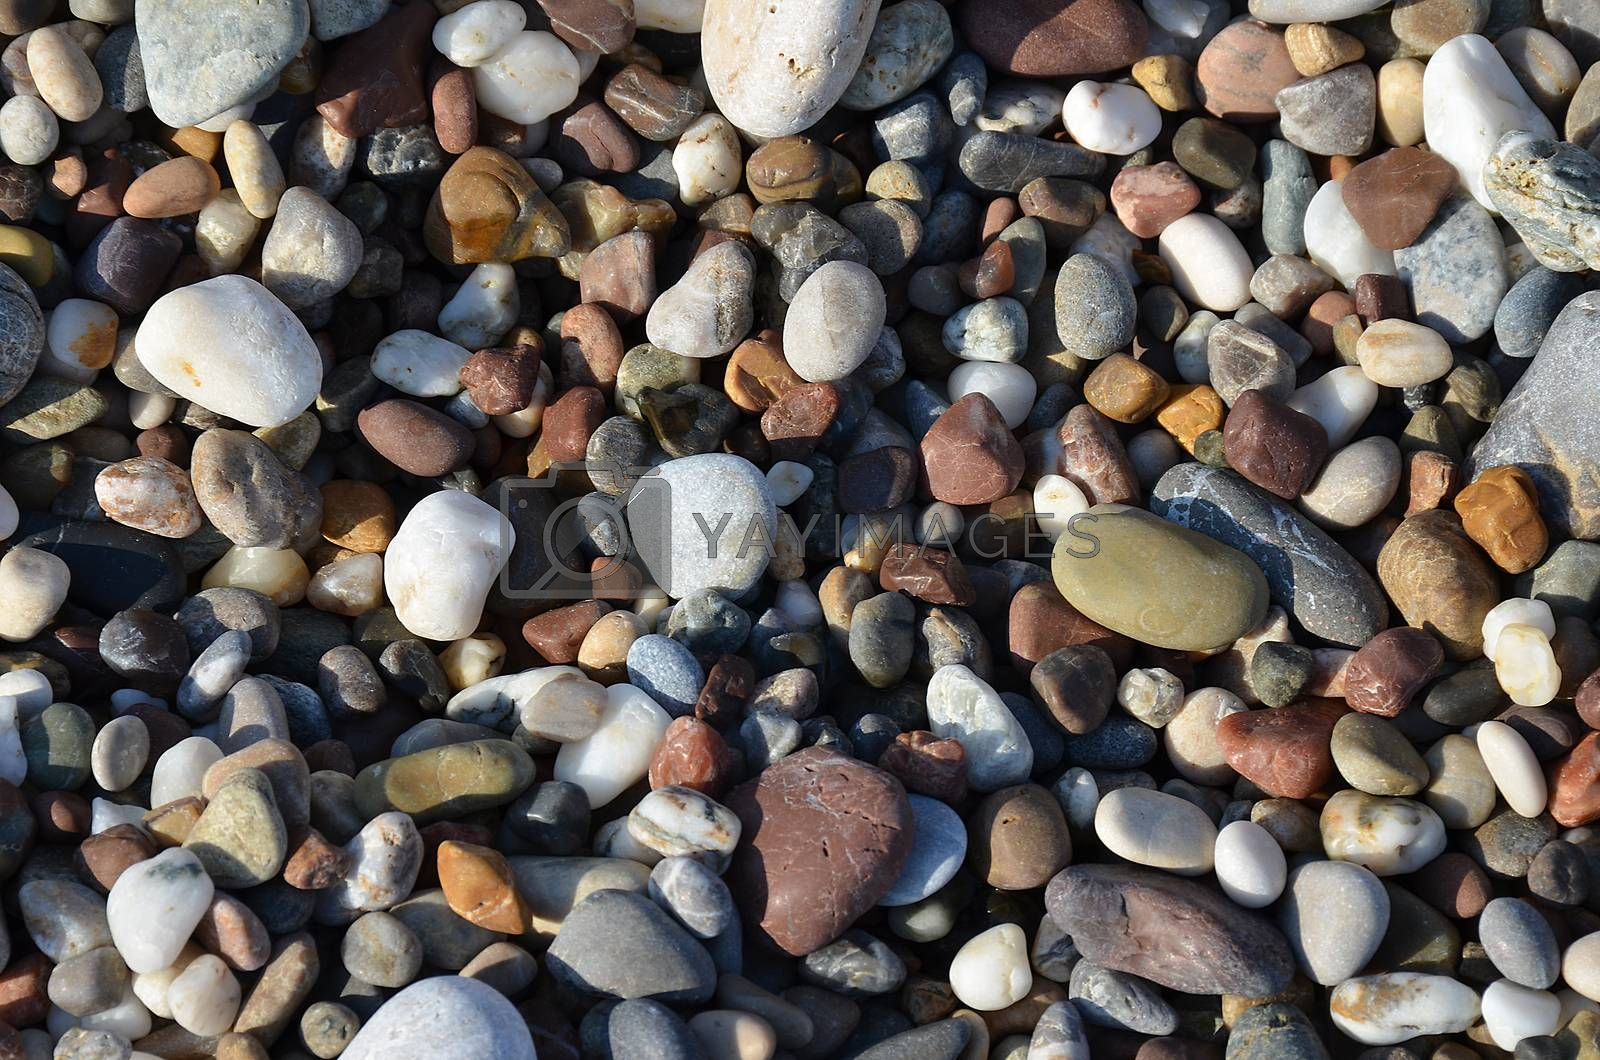 Detail of the various sea pebbles stones by jordano